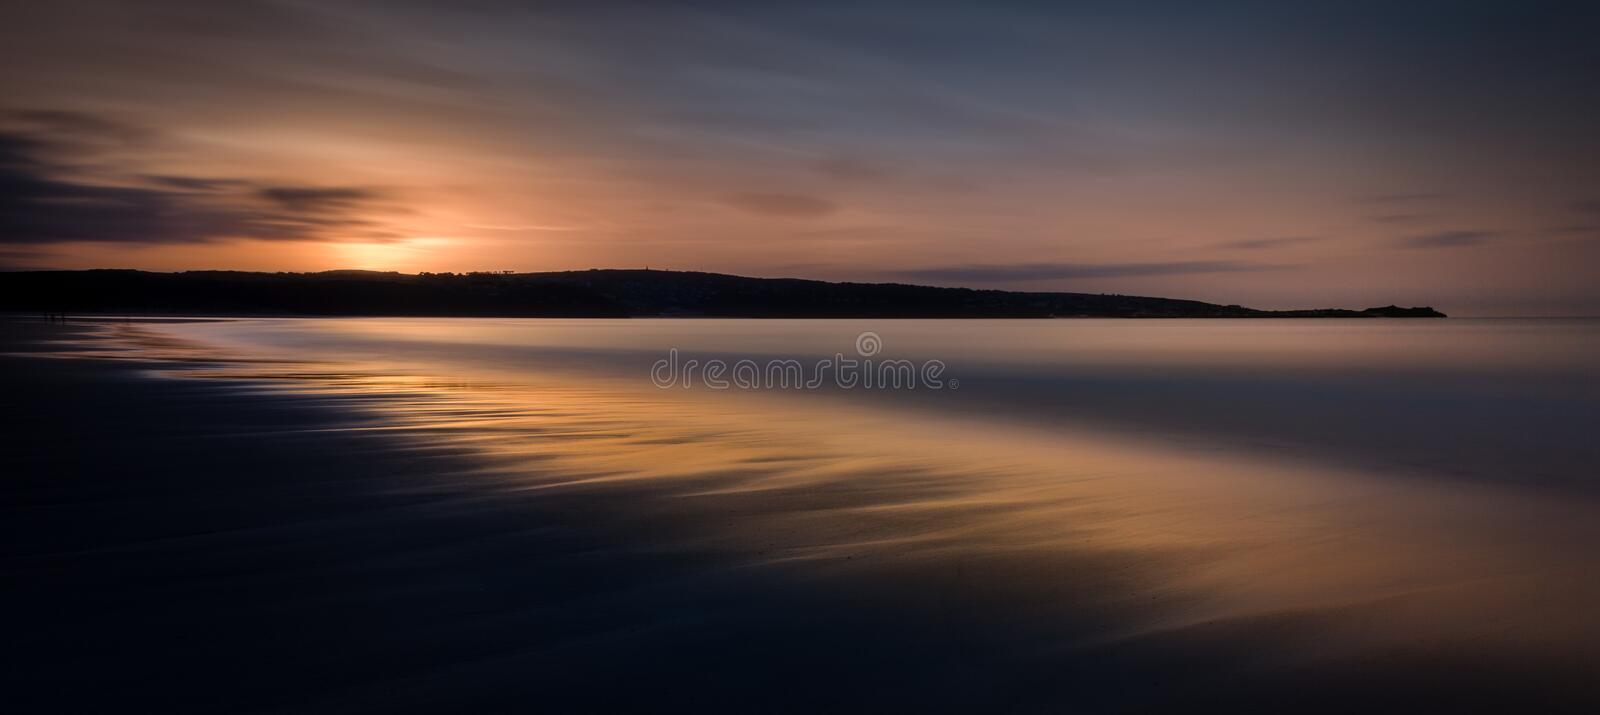 Ethereal Seascape at Sunset, Gwithian Sands, Cornwall, UK royalty free stock images